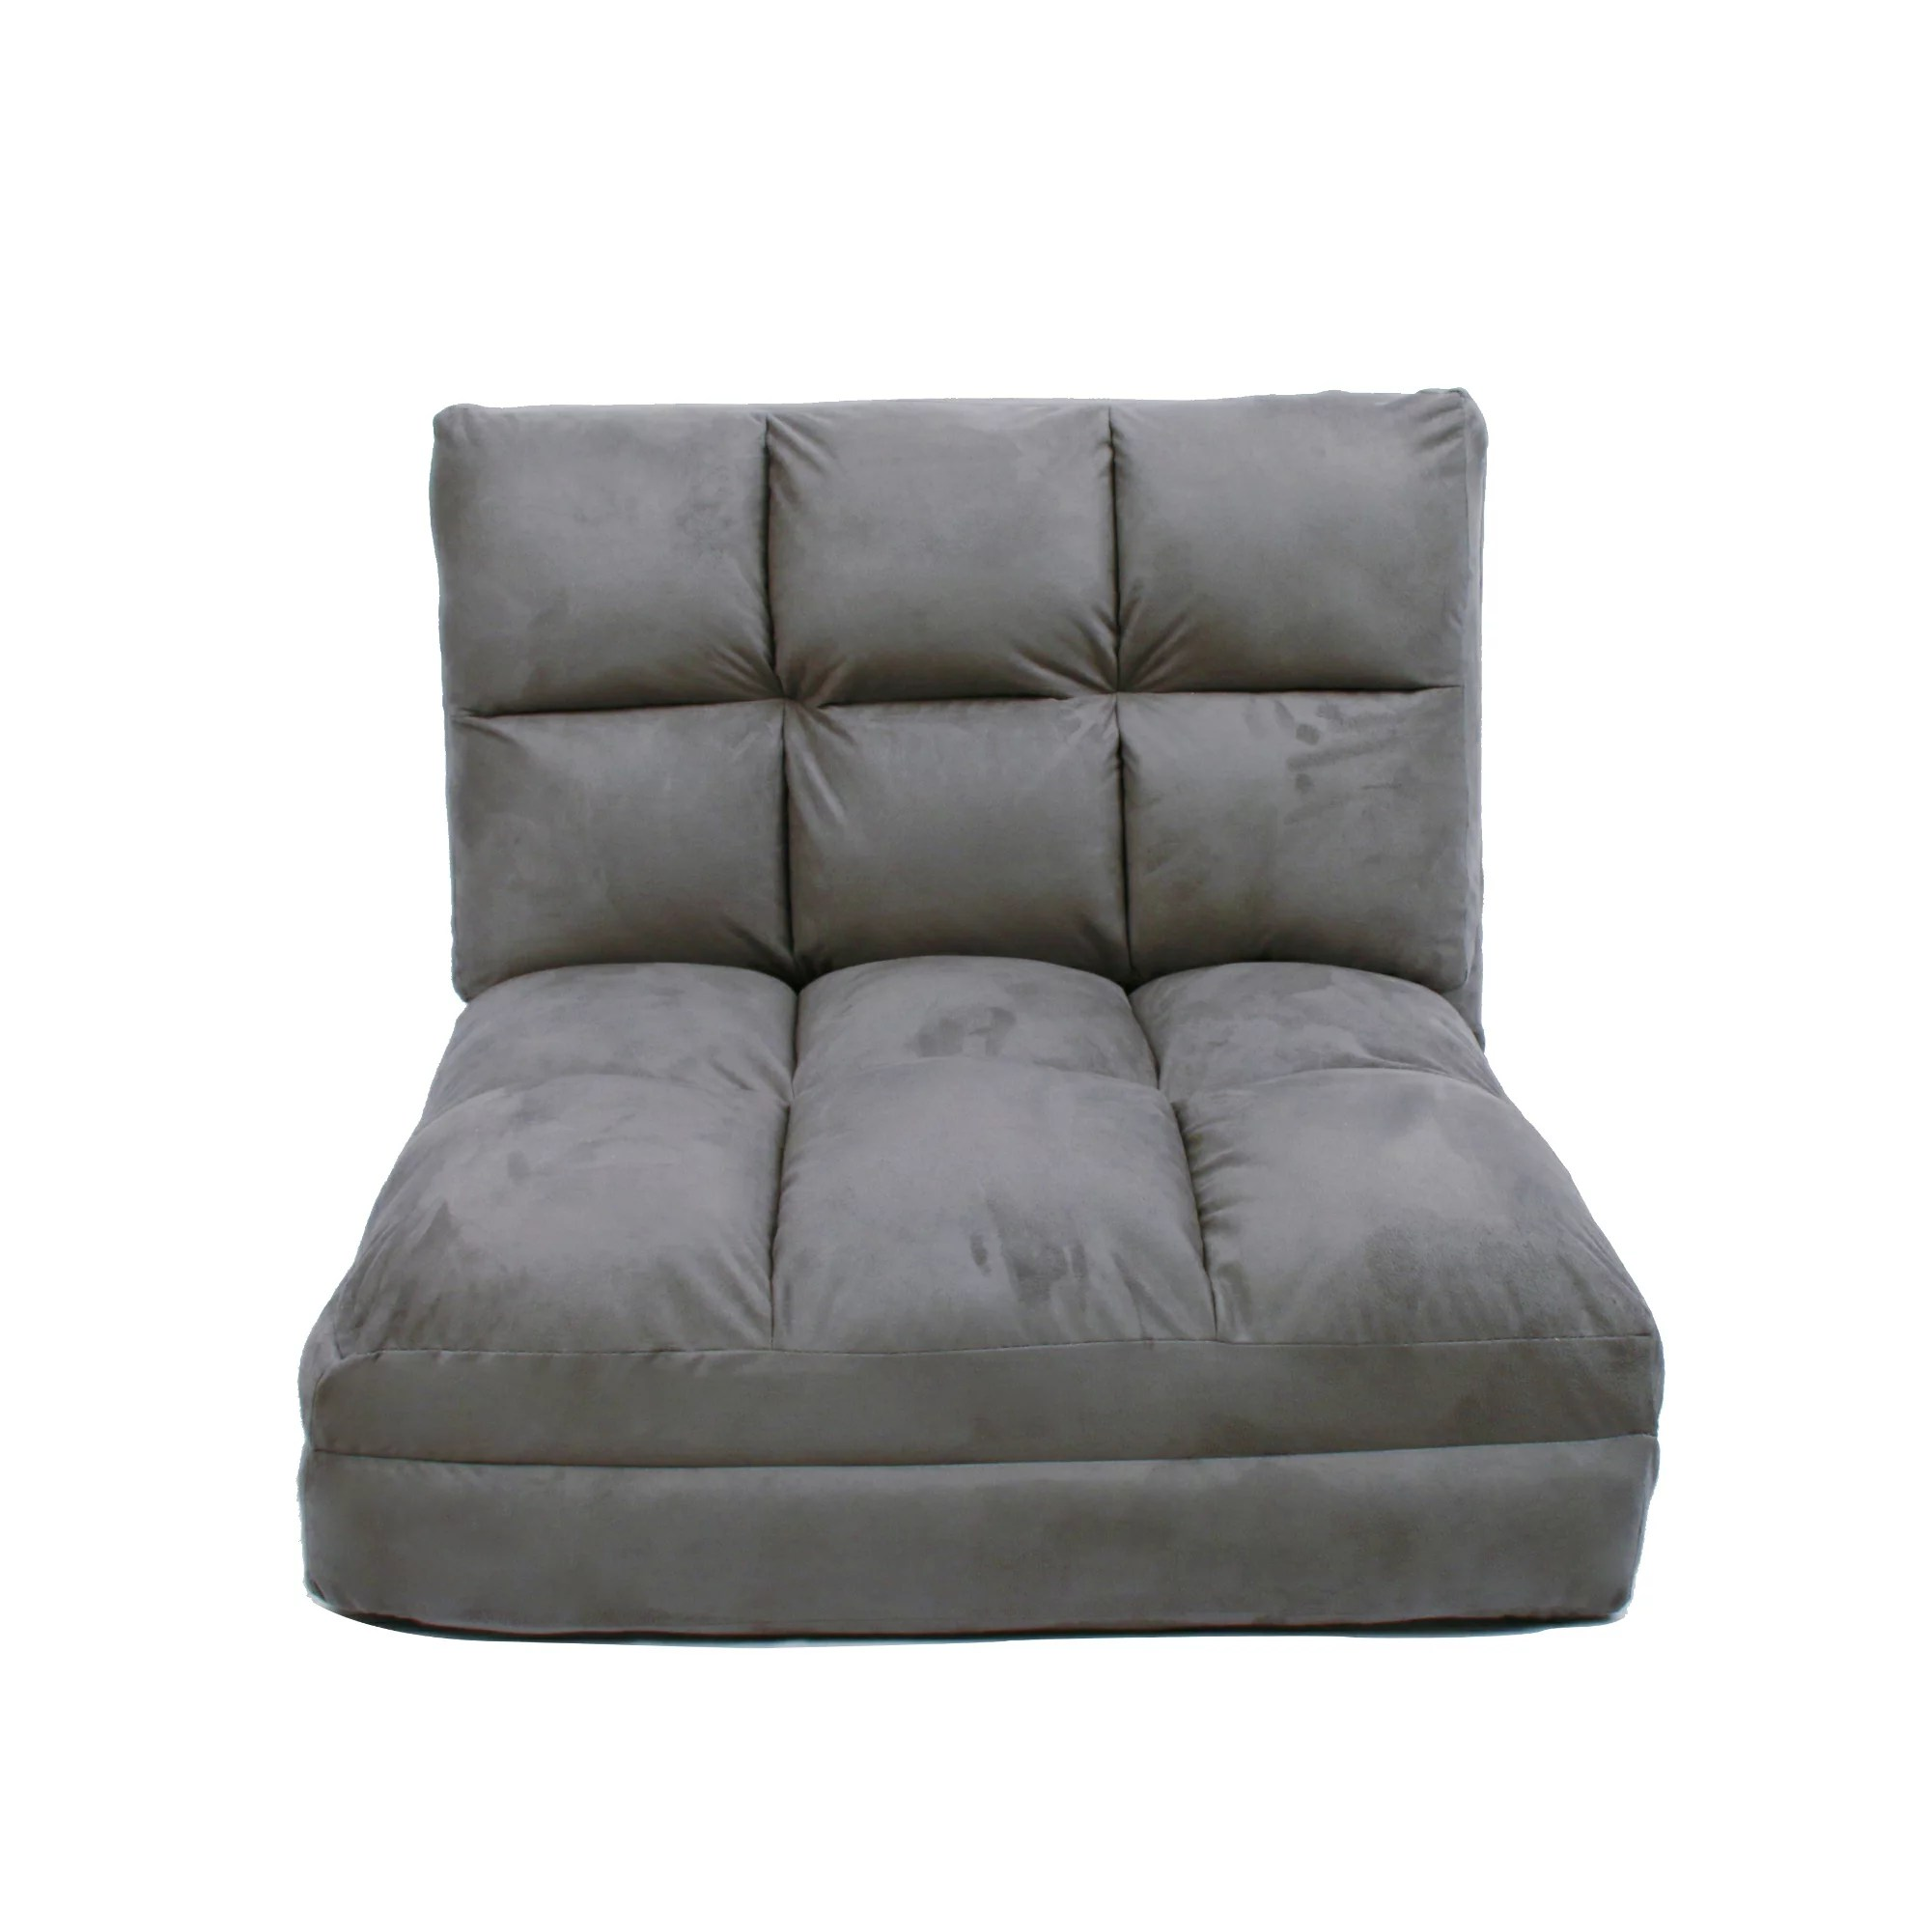 Sleeper Chairs Loungie Microsuede 5 Position Flip Chair Adjustable Sleeper Dorm Bed Couch Lounger Sofa Inspired Home